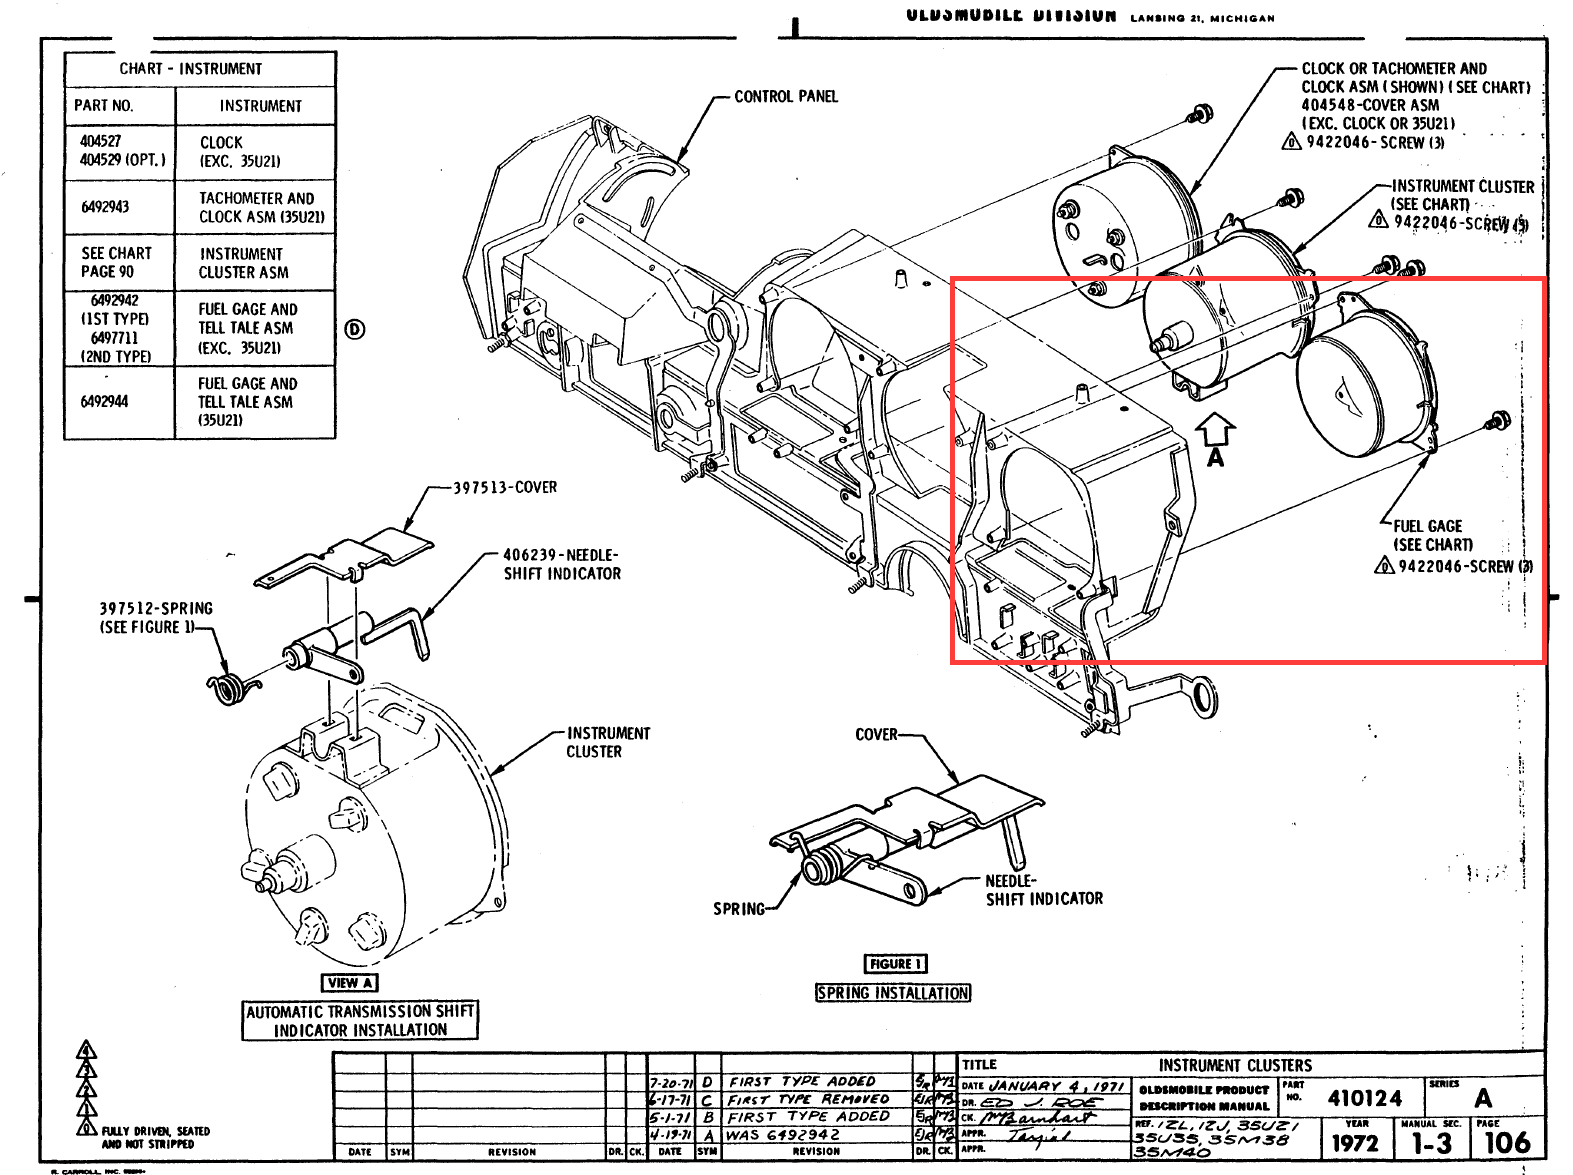 [WRG-9867] 1970 Oldsmobile 442 Wiring Diagram